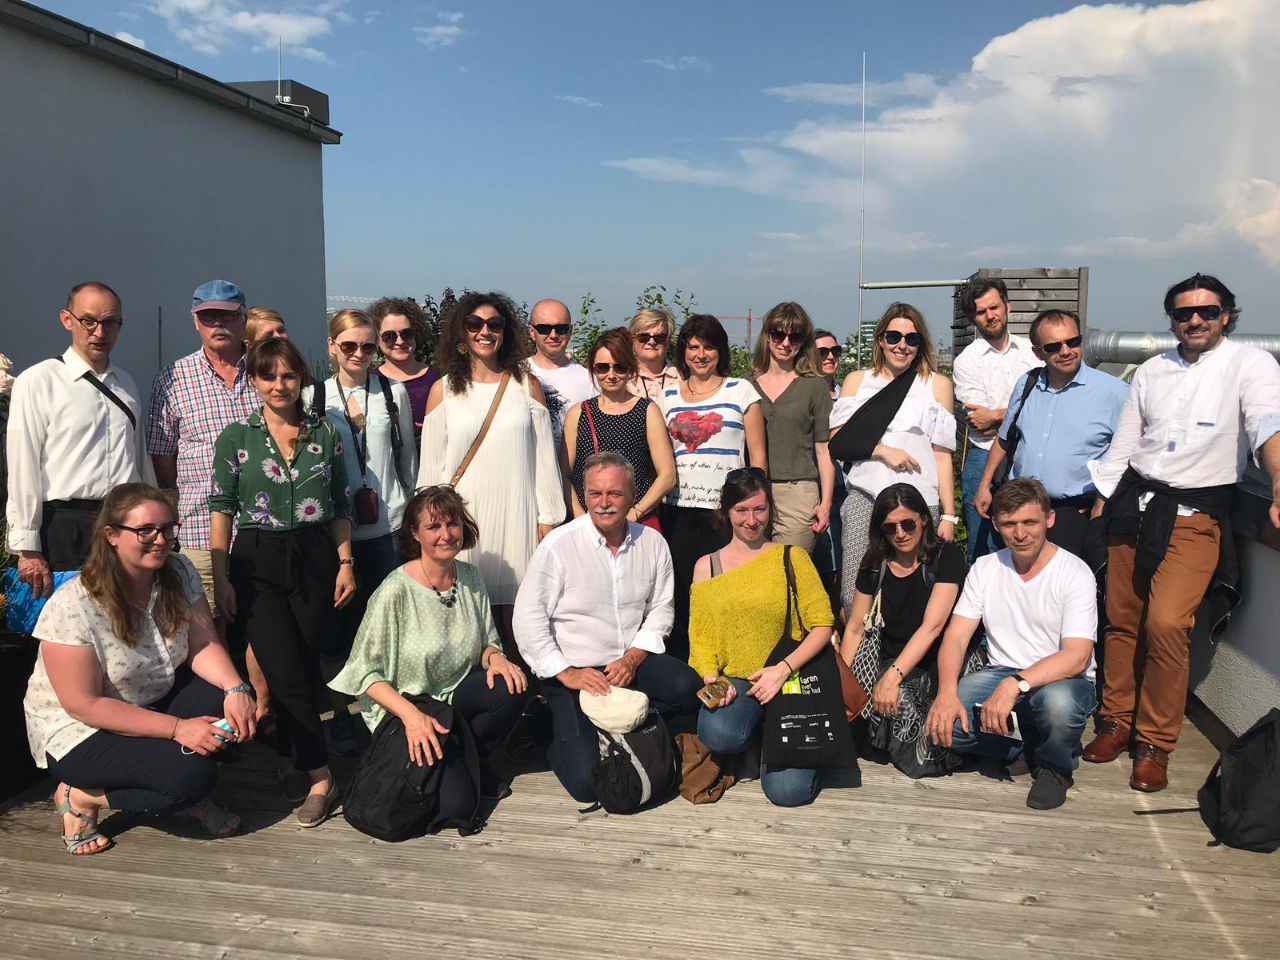 Exchange on reen Roofs in Hamburg in June 2019. Group picture.